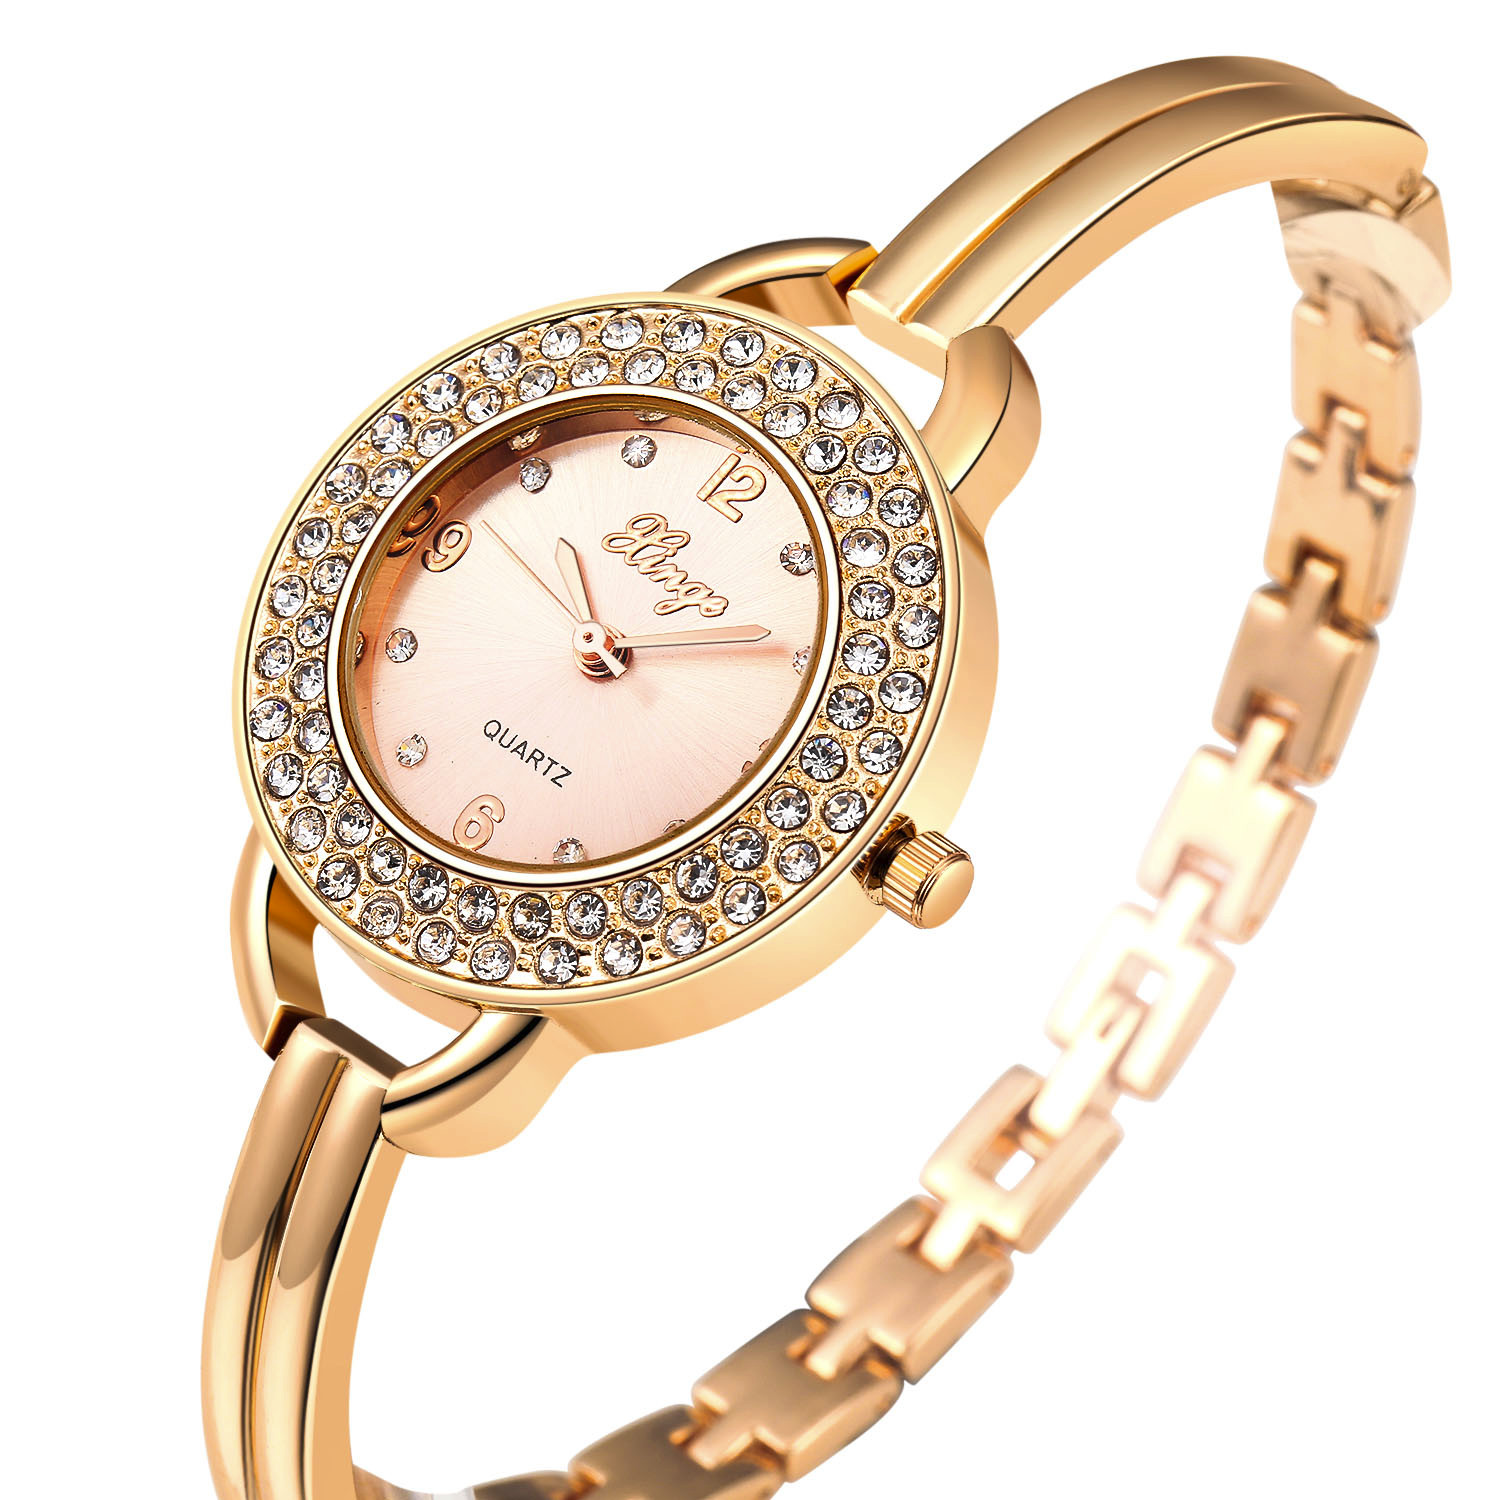 ФОТО Women Watches Reloj Mujer Famous Brand Logo Gold Rhinestone Bangle Watch And Bracelet Set 409R Free shipping Feida